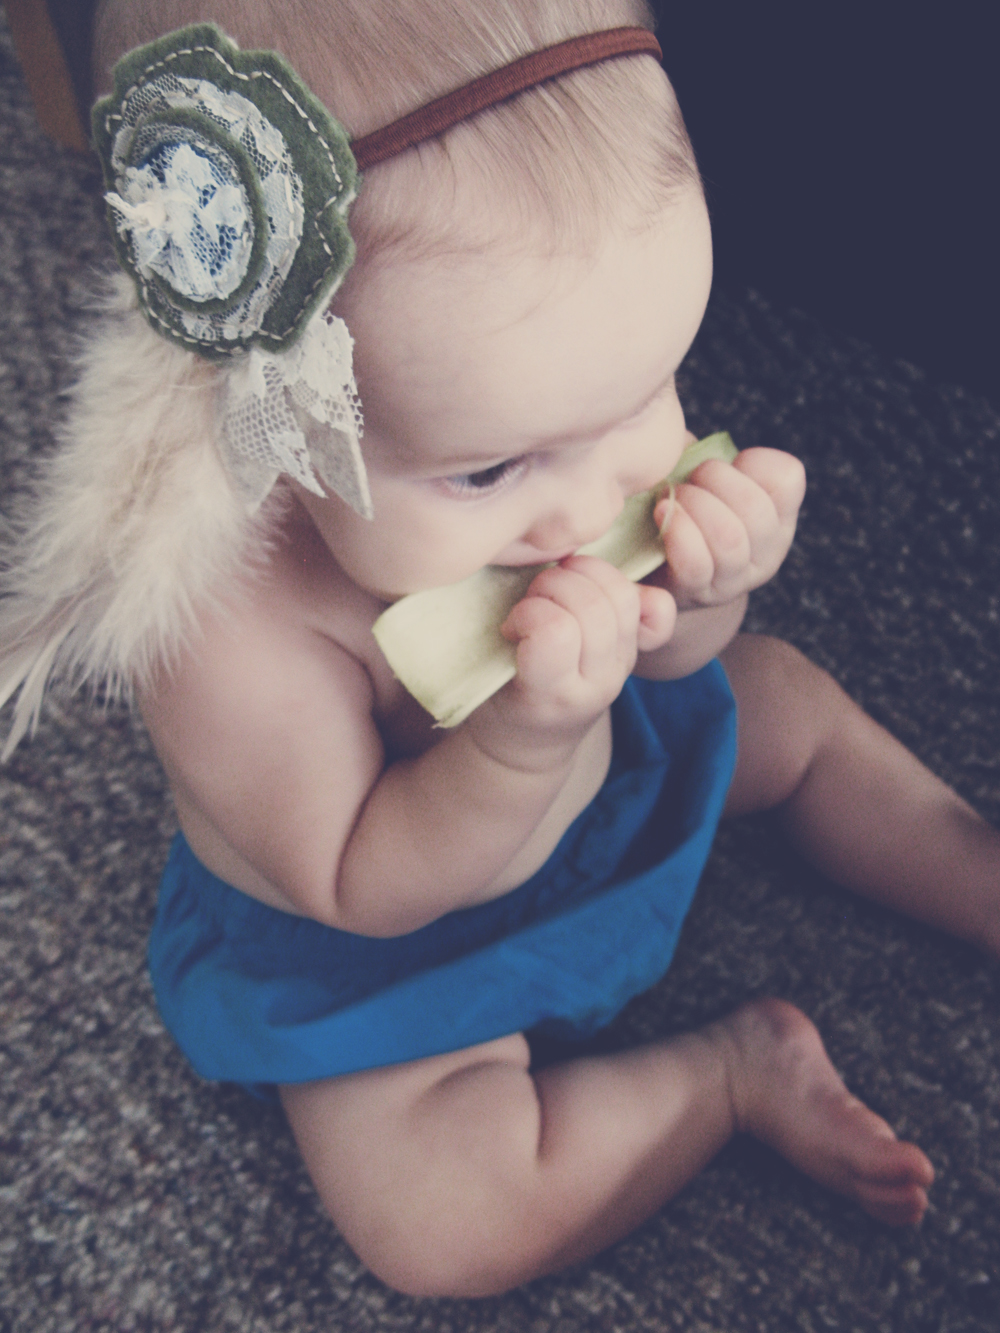 Baby eating organic celery - Baby wearing boho chic lace felt and feather headband via Oaxacaborn on Etsy